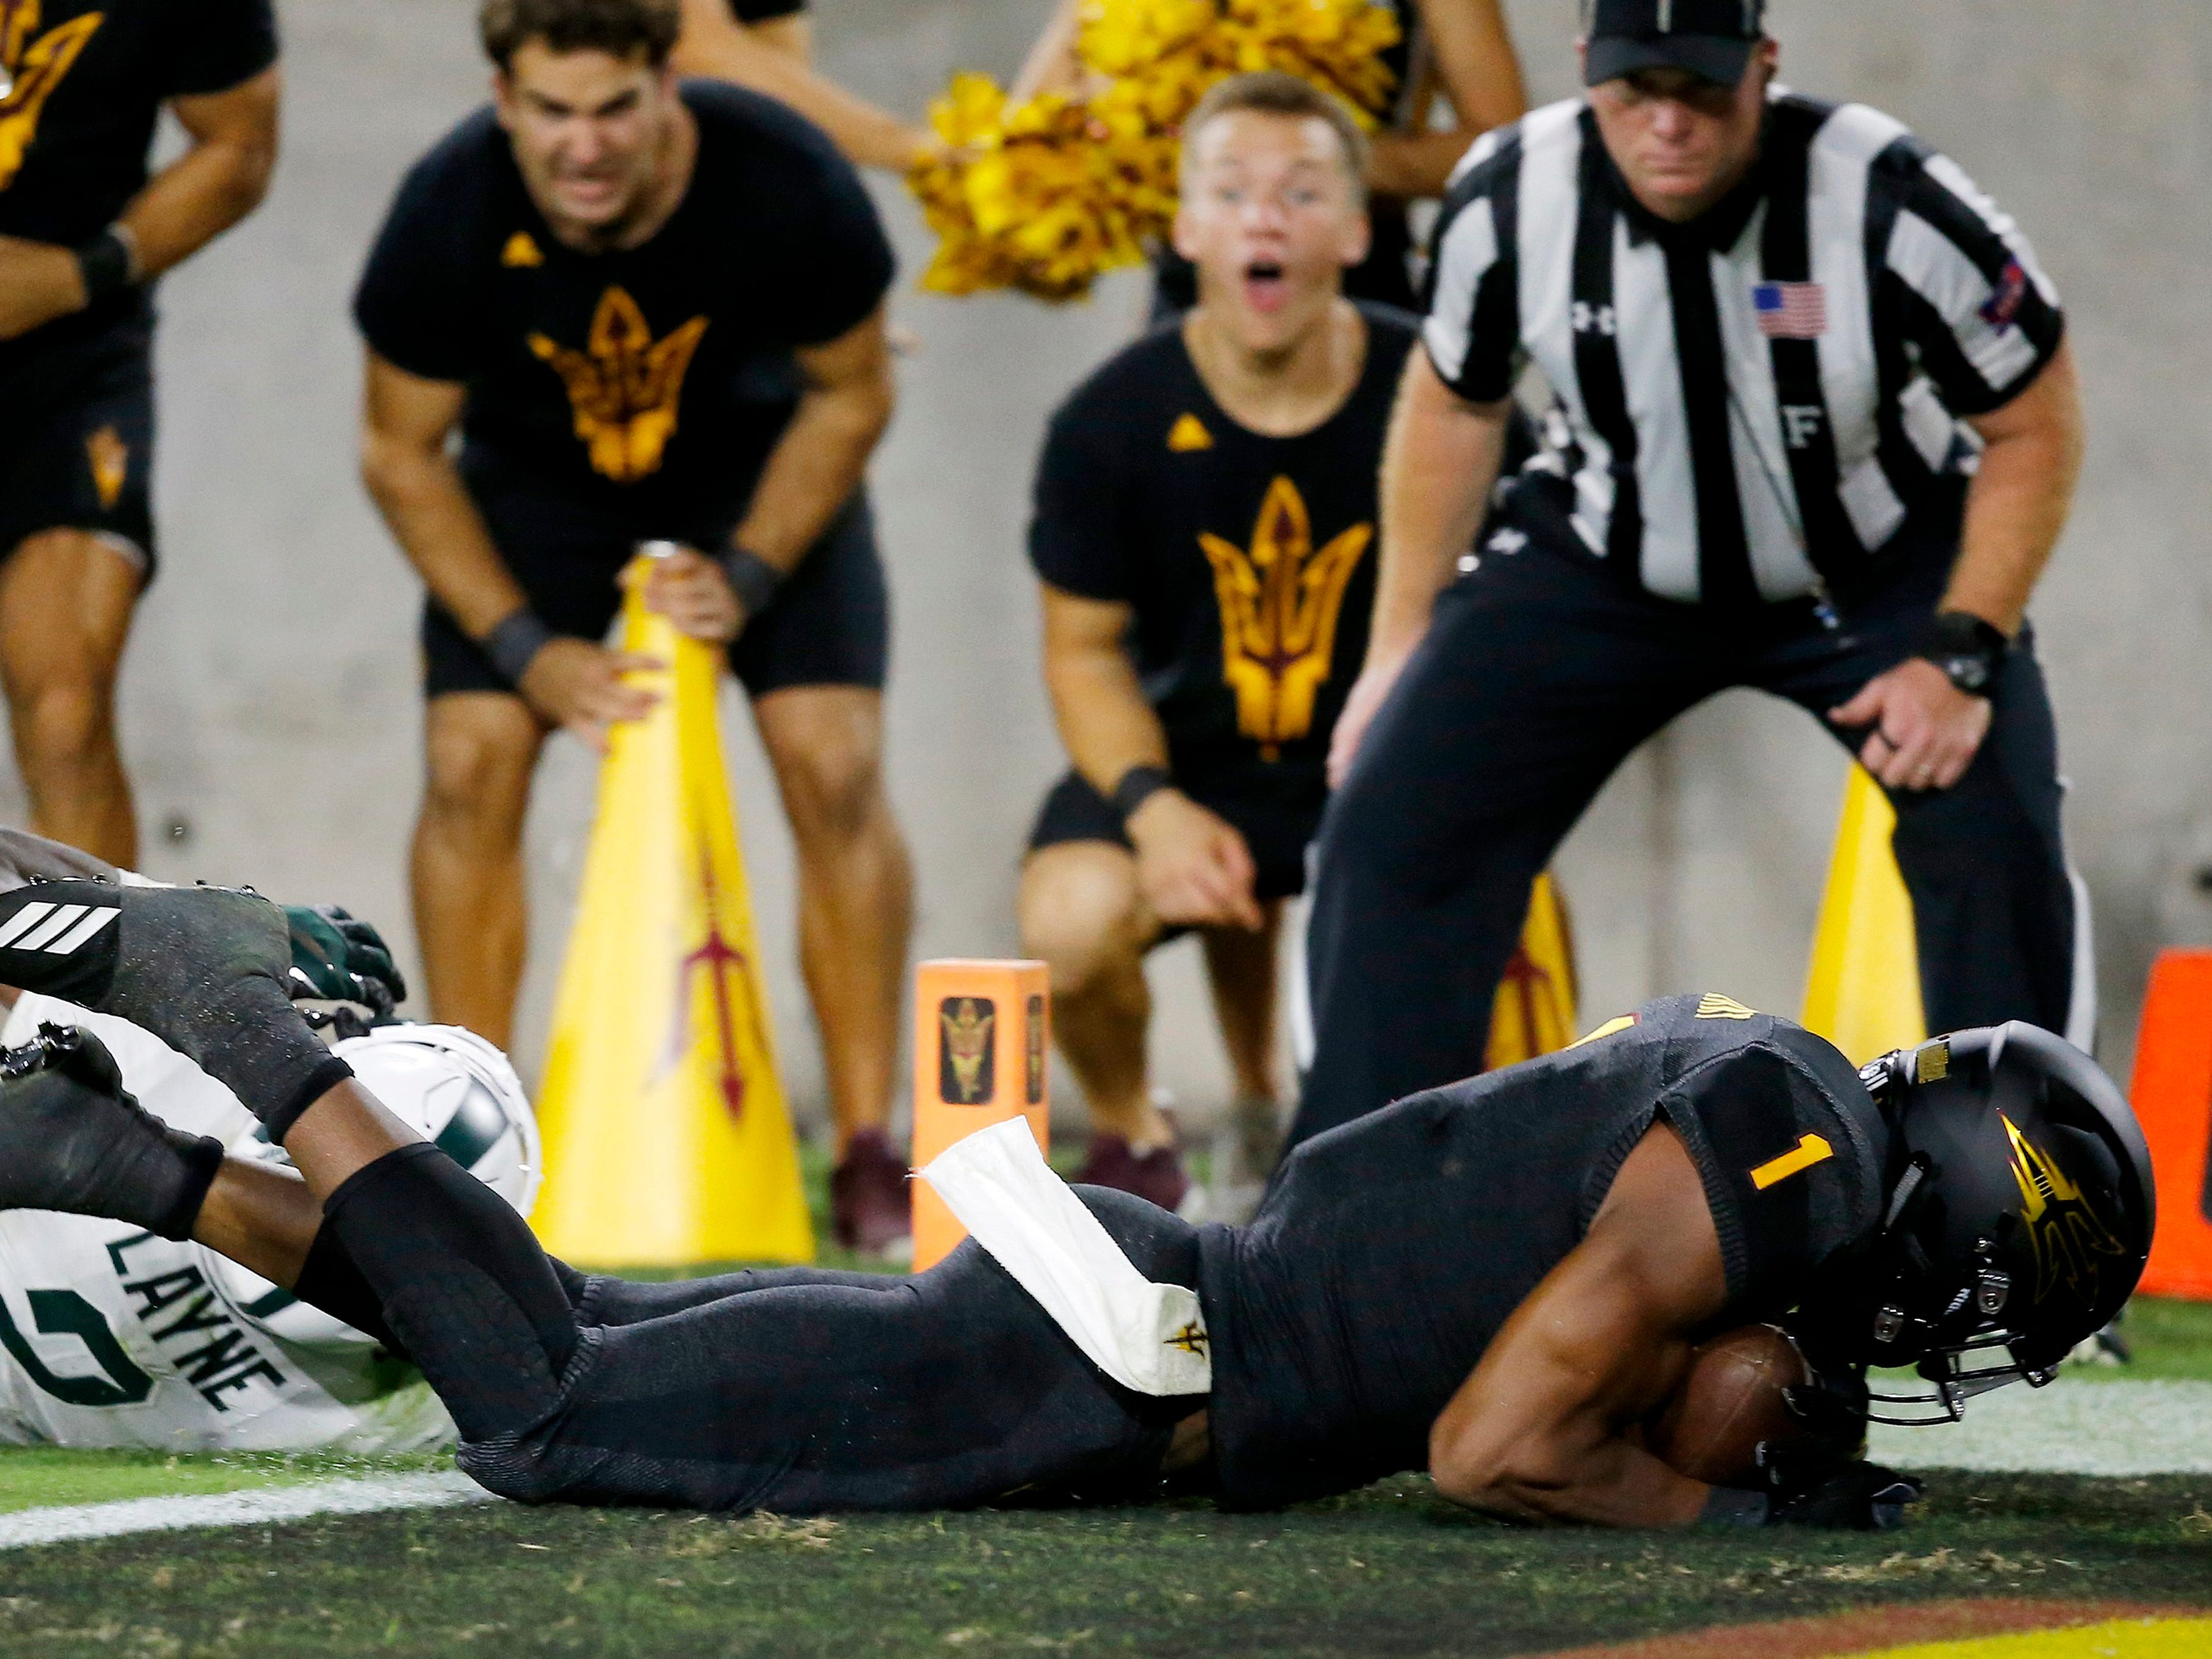 Arizona State wide receiver N'Keal Harry (1) dives into the end zone for a touchdown as he gets past Michigan State cornerback Justin Layne (2) during the second half of an NCAA college football game Saturday, Sept. 8, 2018, in Tempe, Ariz. Arizona State defeated Michigan State 16-13.